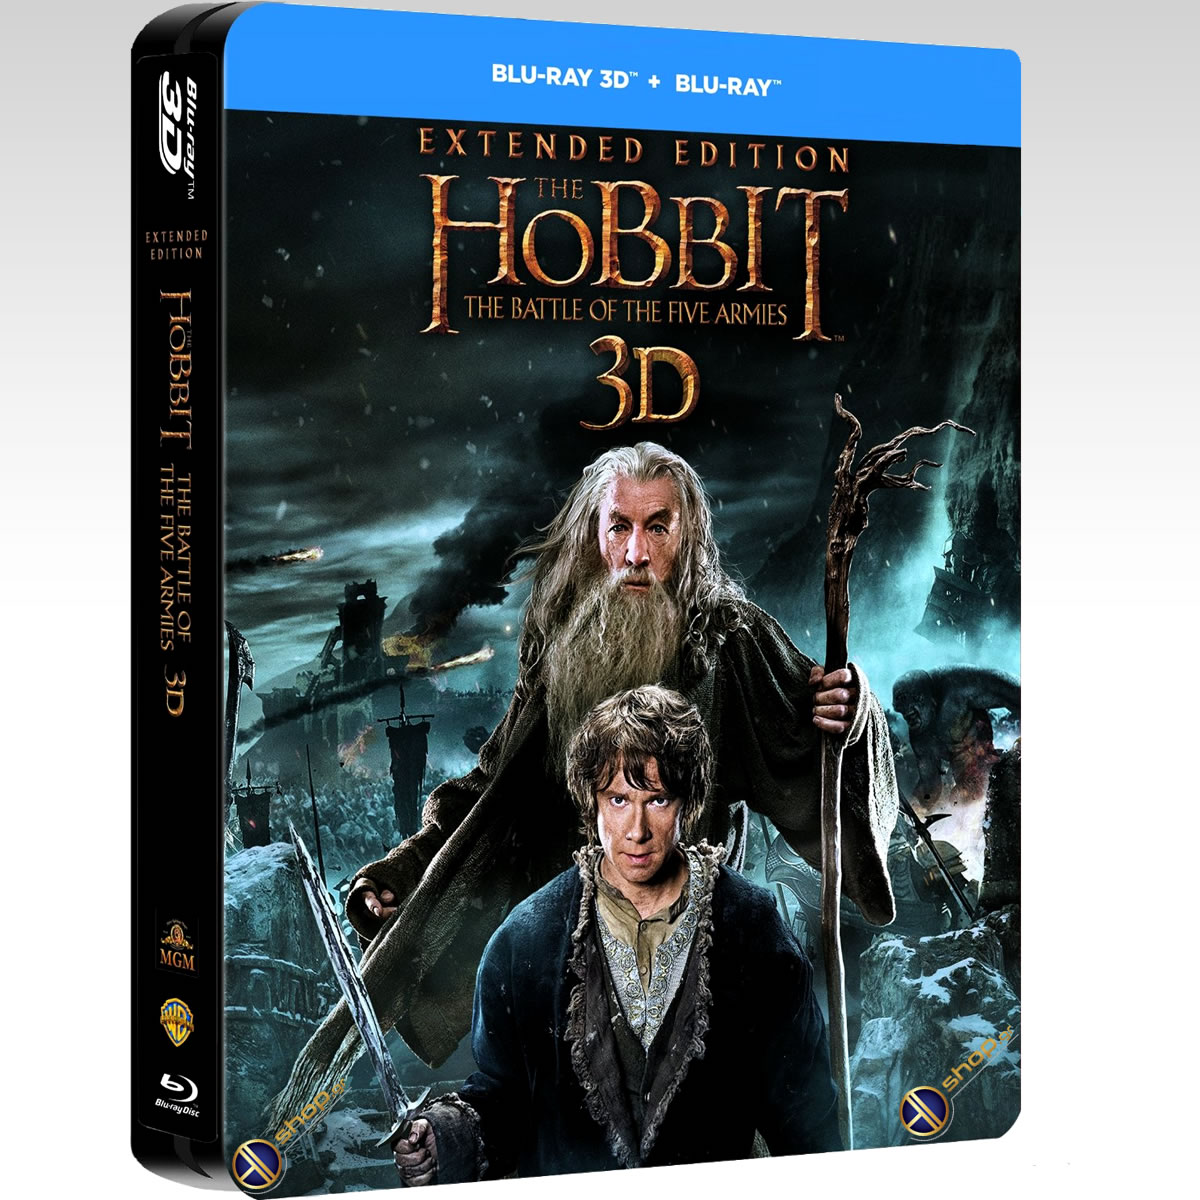 THE HOBBIT: THE BATTLE OF THE FIVE ARMIES 3D Extended Edition - ΧΟΜΠΙΤ: Η ΜΑΧΗ ΤΩΝ ΠΕΝΤΕ ΣΤΡΑΤΩΝ 3D Extended Edition STEELBOOK [ΕΛΛΗΝΙΚΟ] (2 BLU-RAY 3D + 3 BLU-RAY)